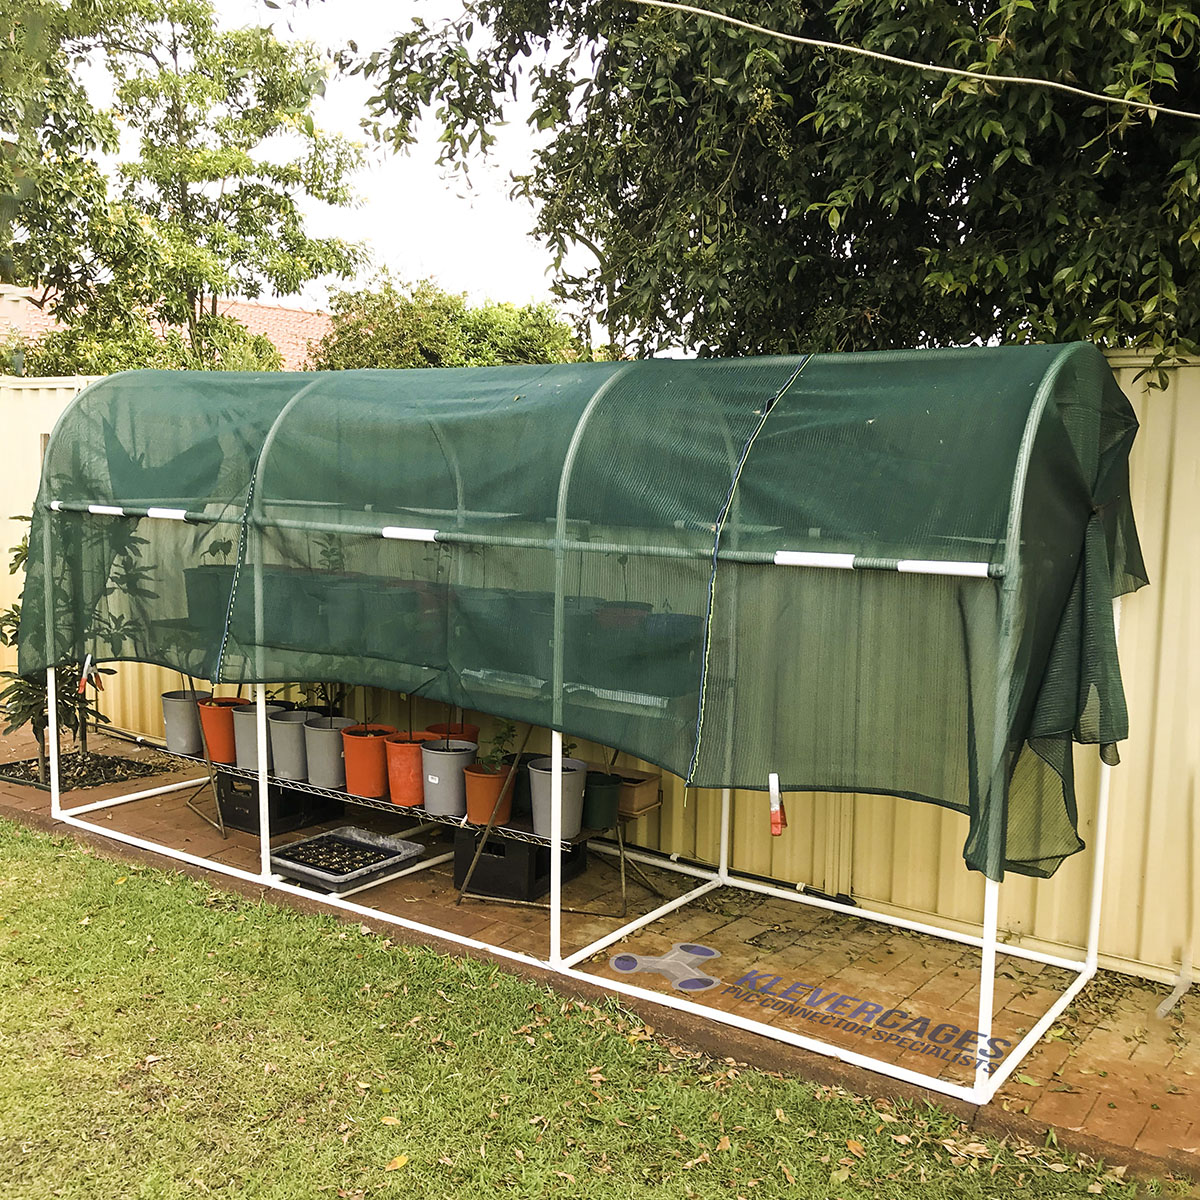 Easy to build arched shadehouse frame covered with green shadecloth built with a PVC pipe and connector frame to protect pot plants from the harsh sun. PVC connectors used are 20mm l-tees, 3 ways, tees, slip tees and snapclamps from Klever Cages Australia